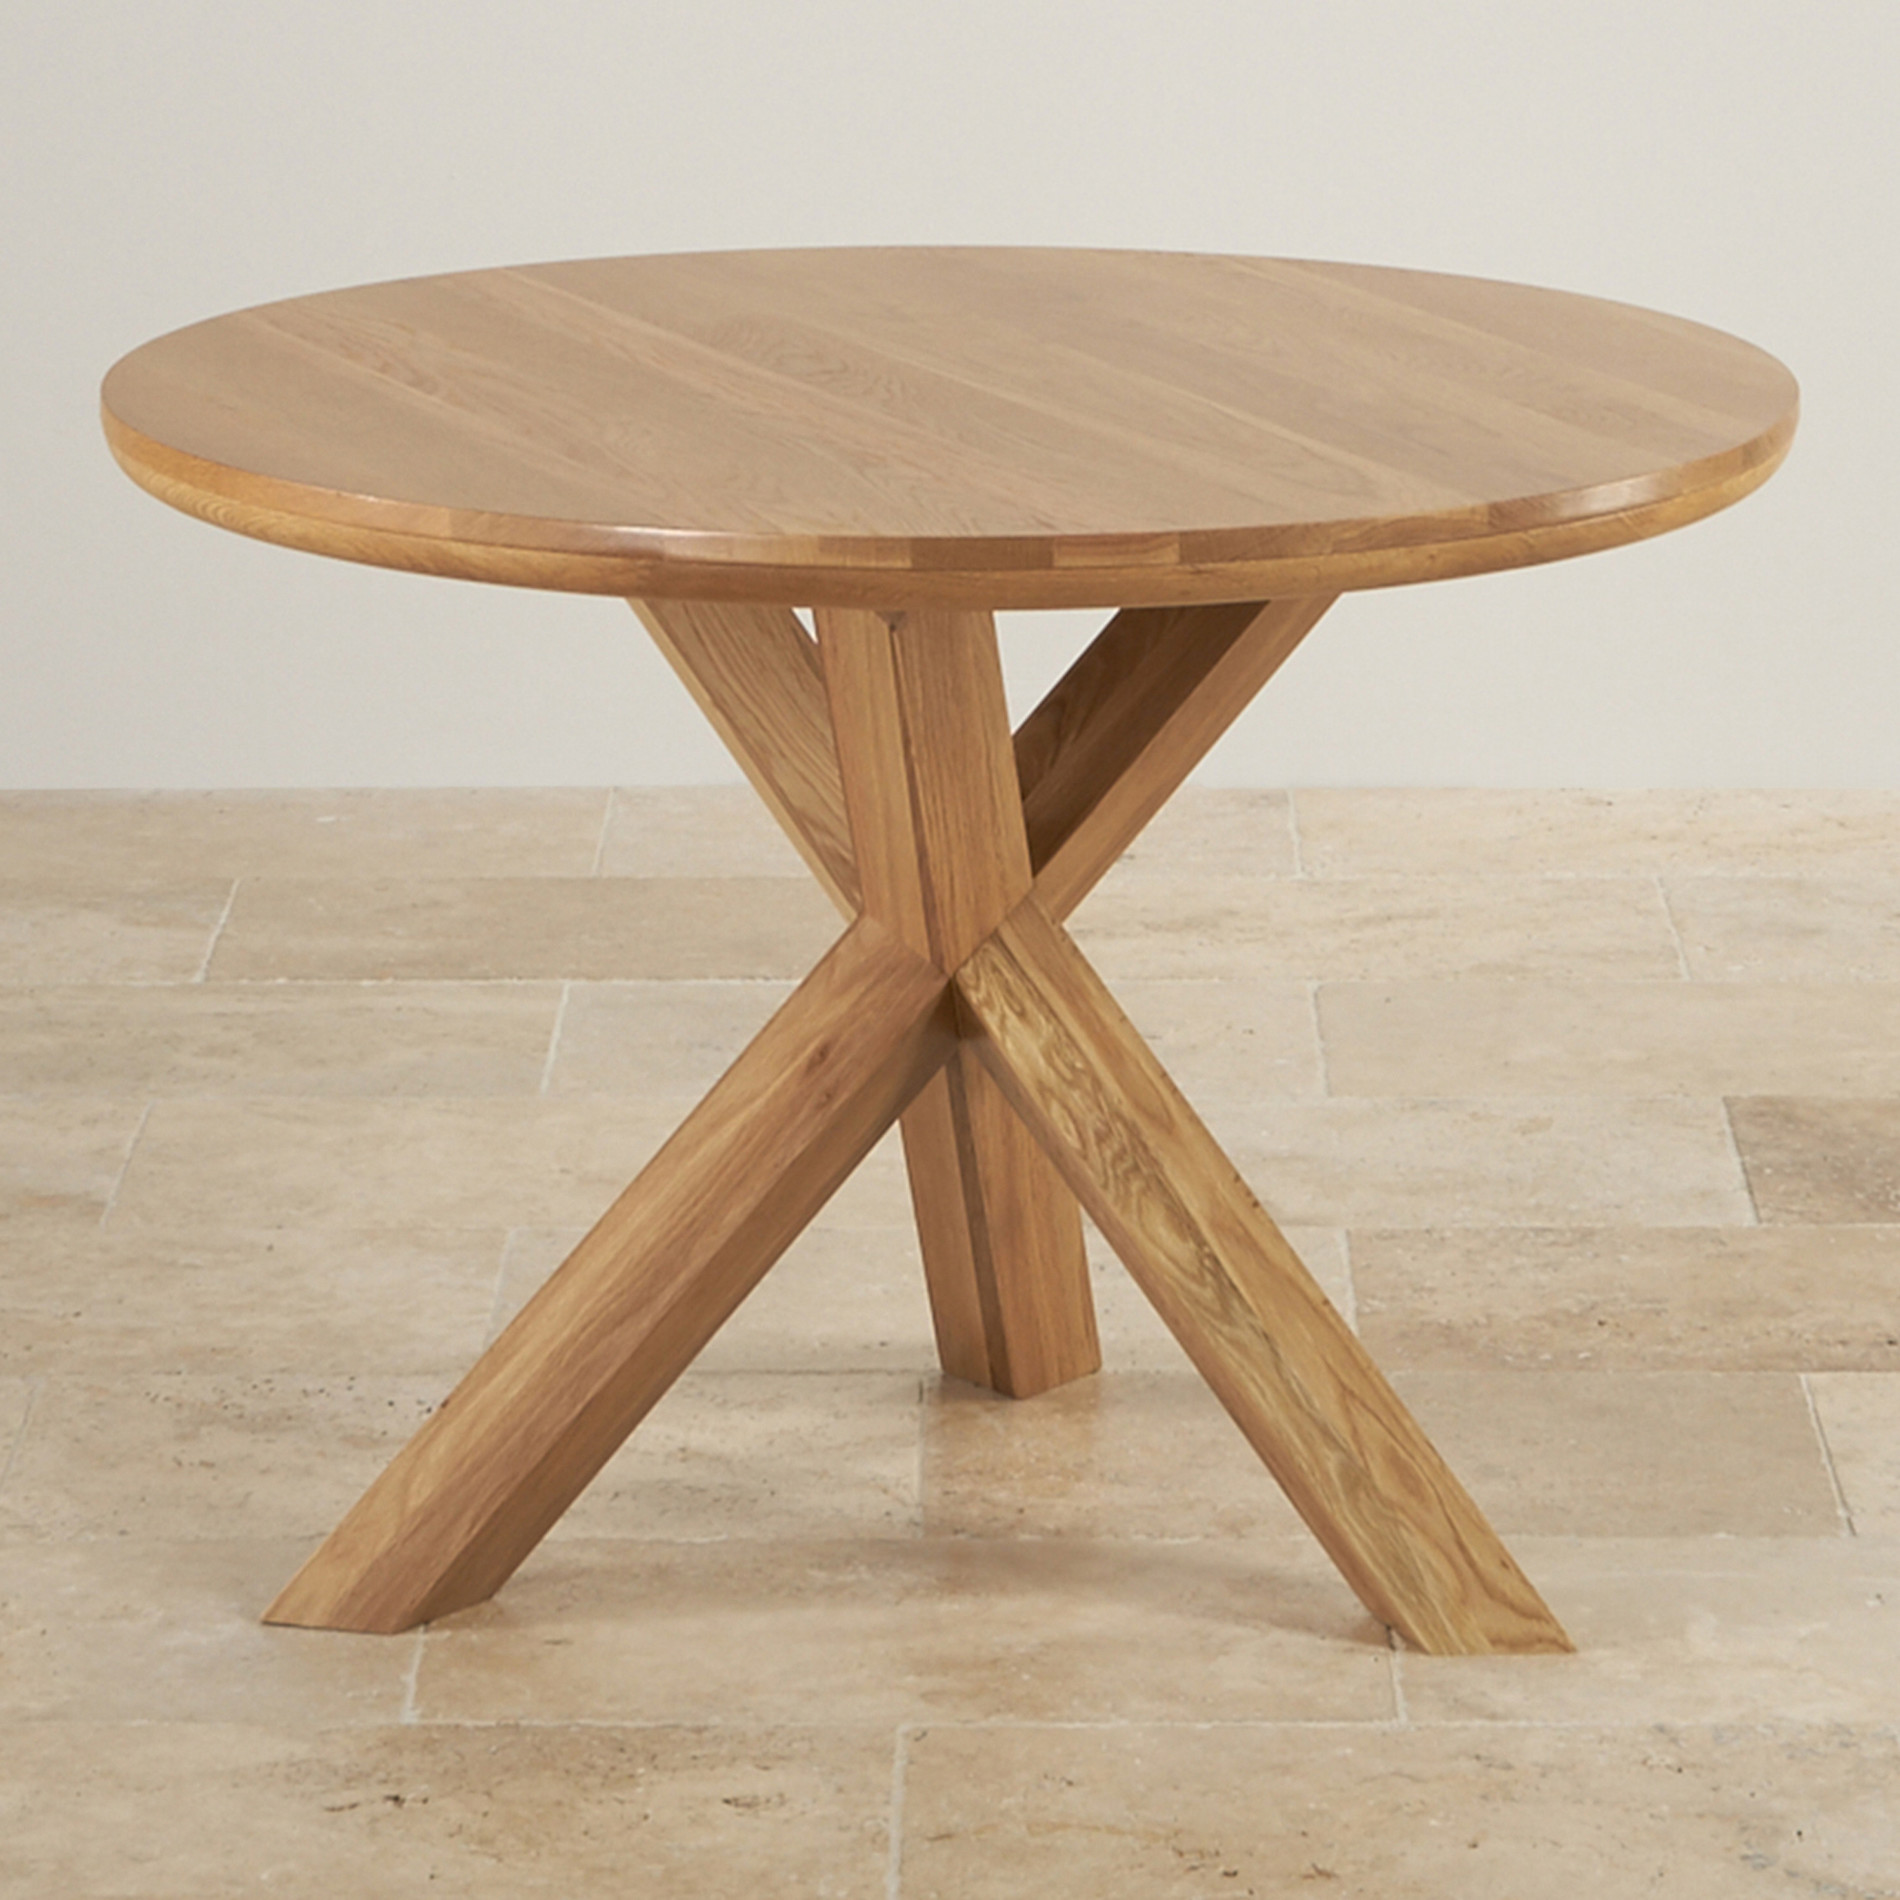 Trinity Natural Solid Oak Round Table with Crossed Legs : trinity natural solid oak round table with crossed legs 5739ea5b3524f from www.oakfurnitureland.co.uk size 1900 x 1900 jpeg 469kB